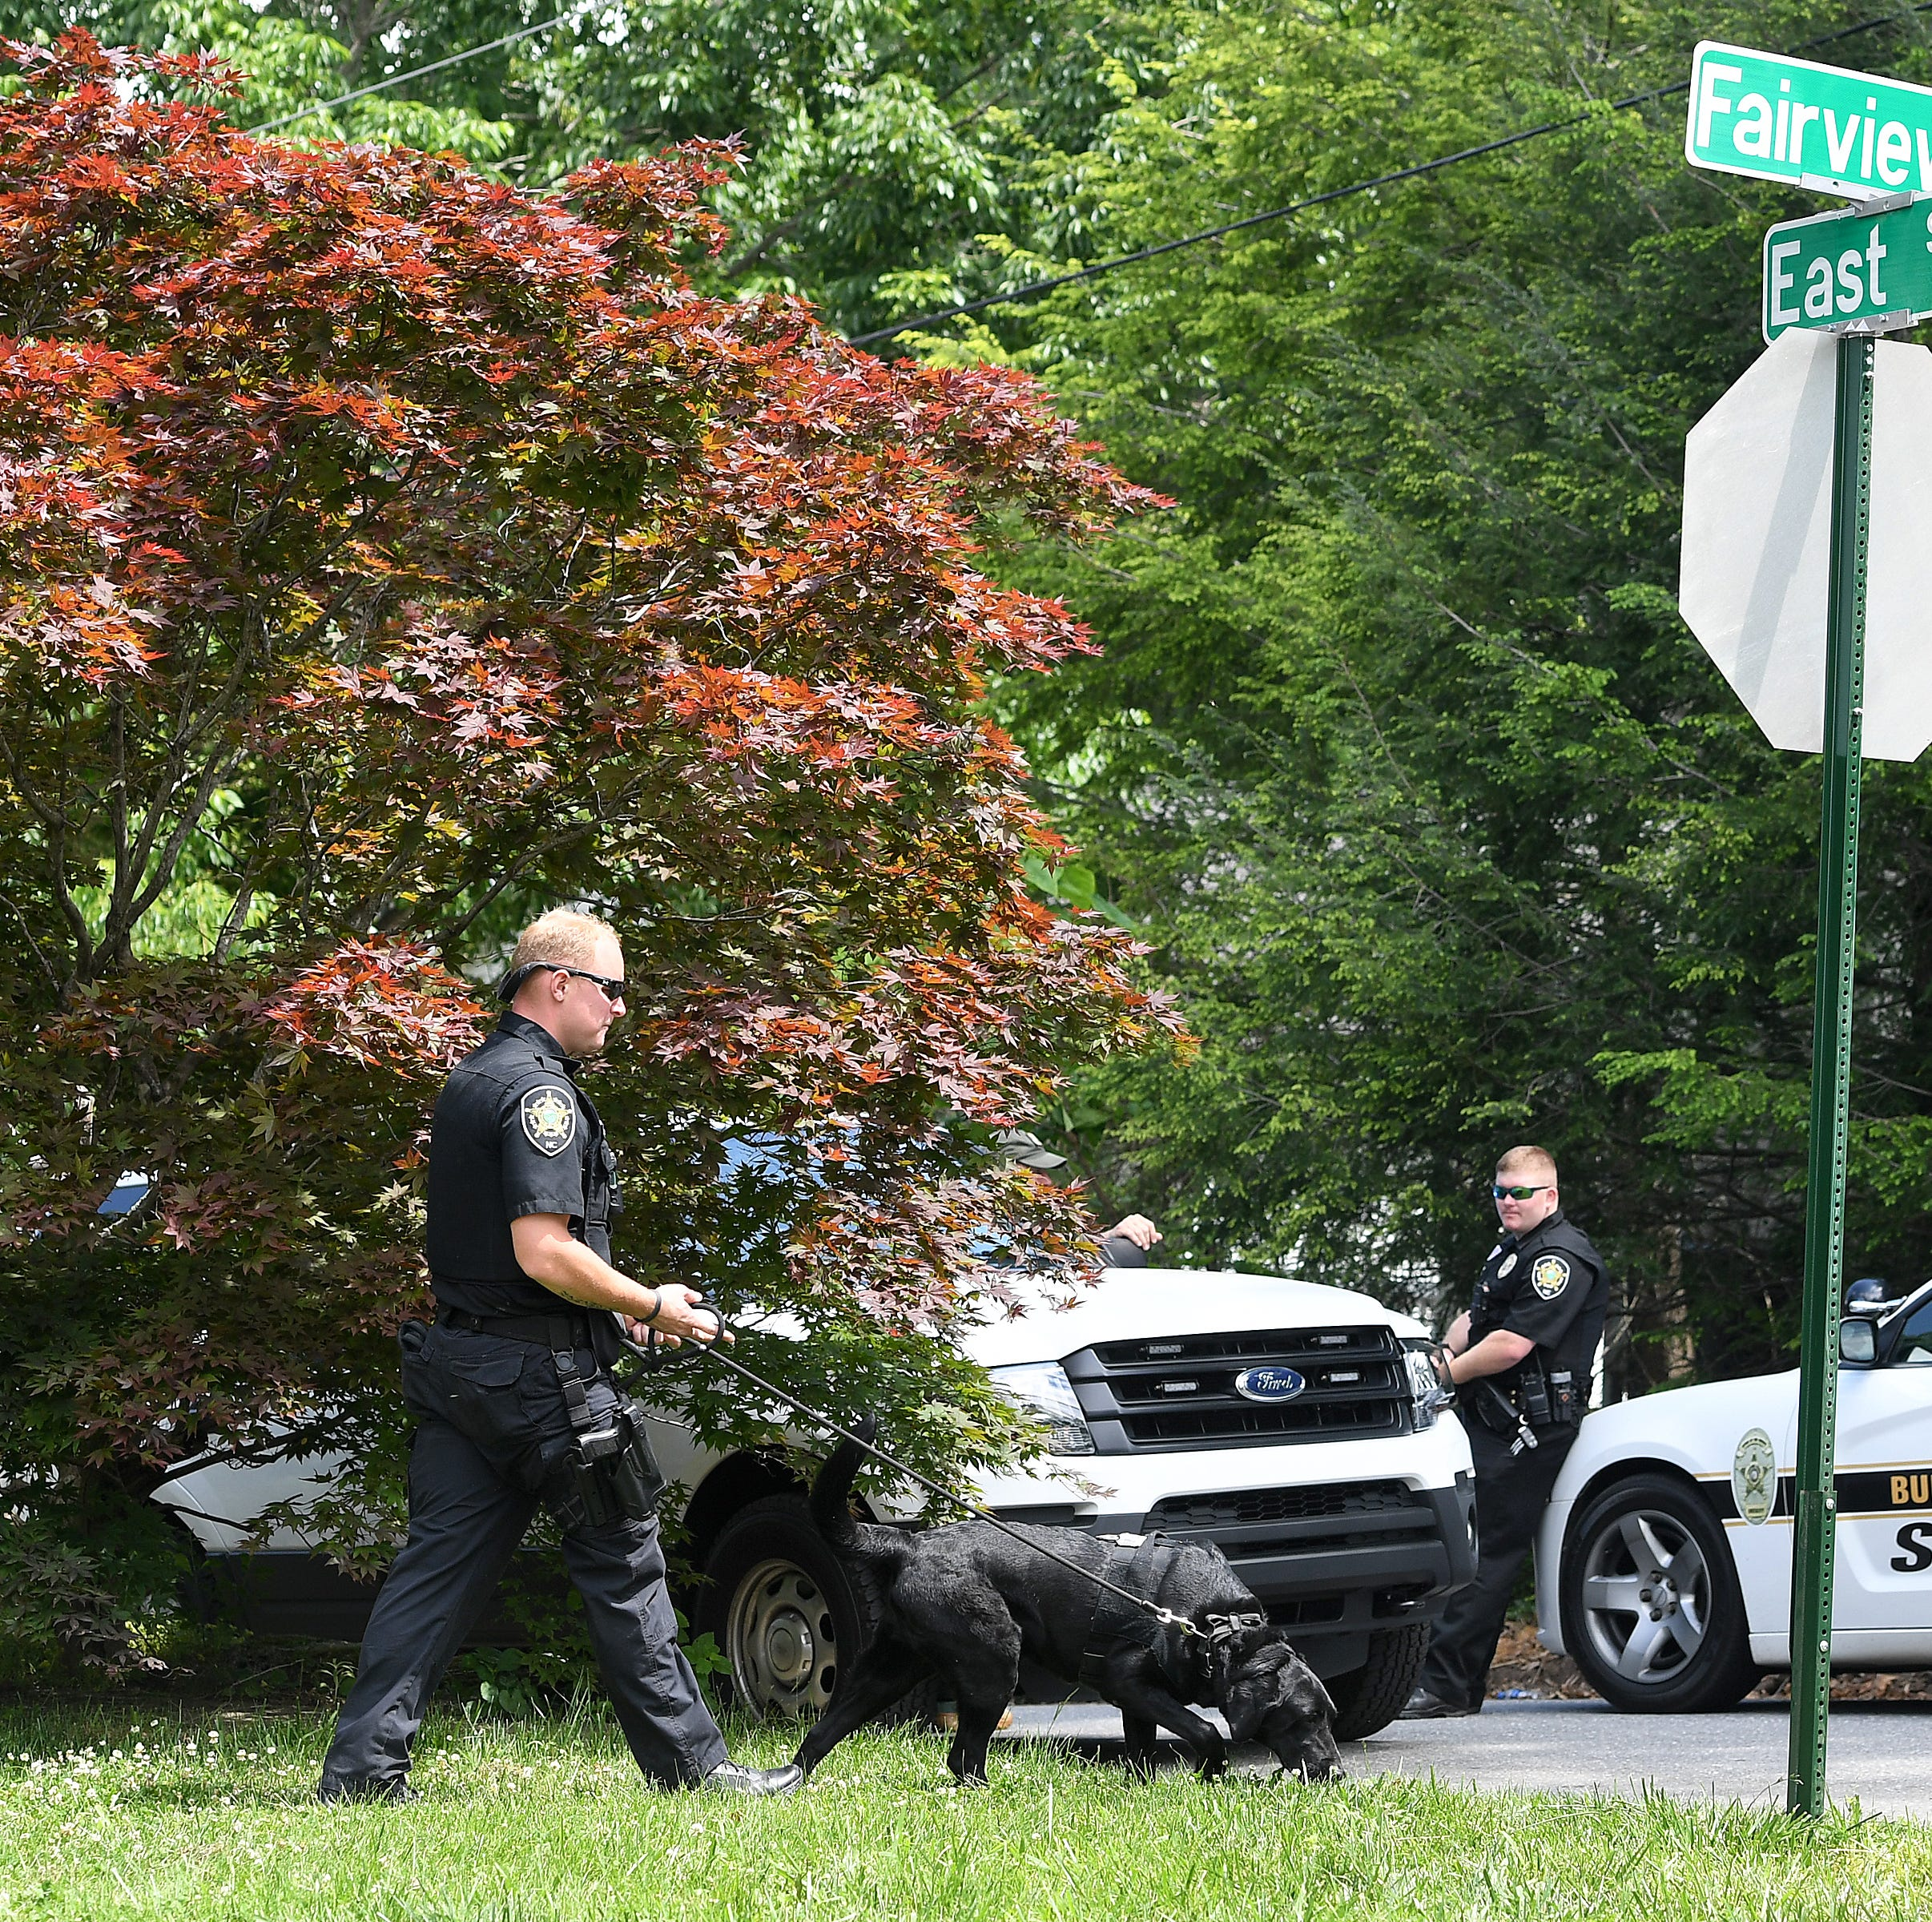 An officer walks a police dog at a scene on Fairview Road where three armed robbery suspects were apprehended after a pursuit on Fairview Road on May 20, 2019.